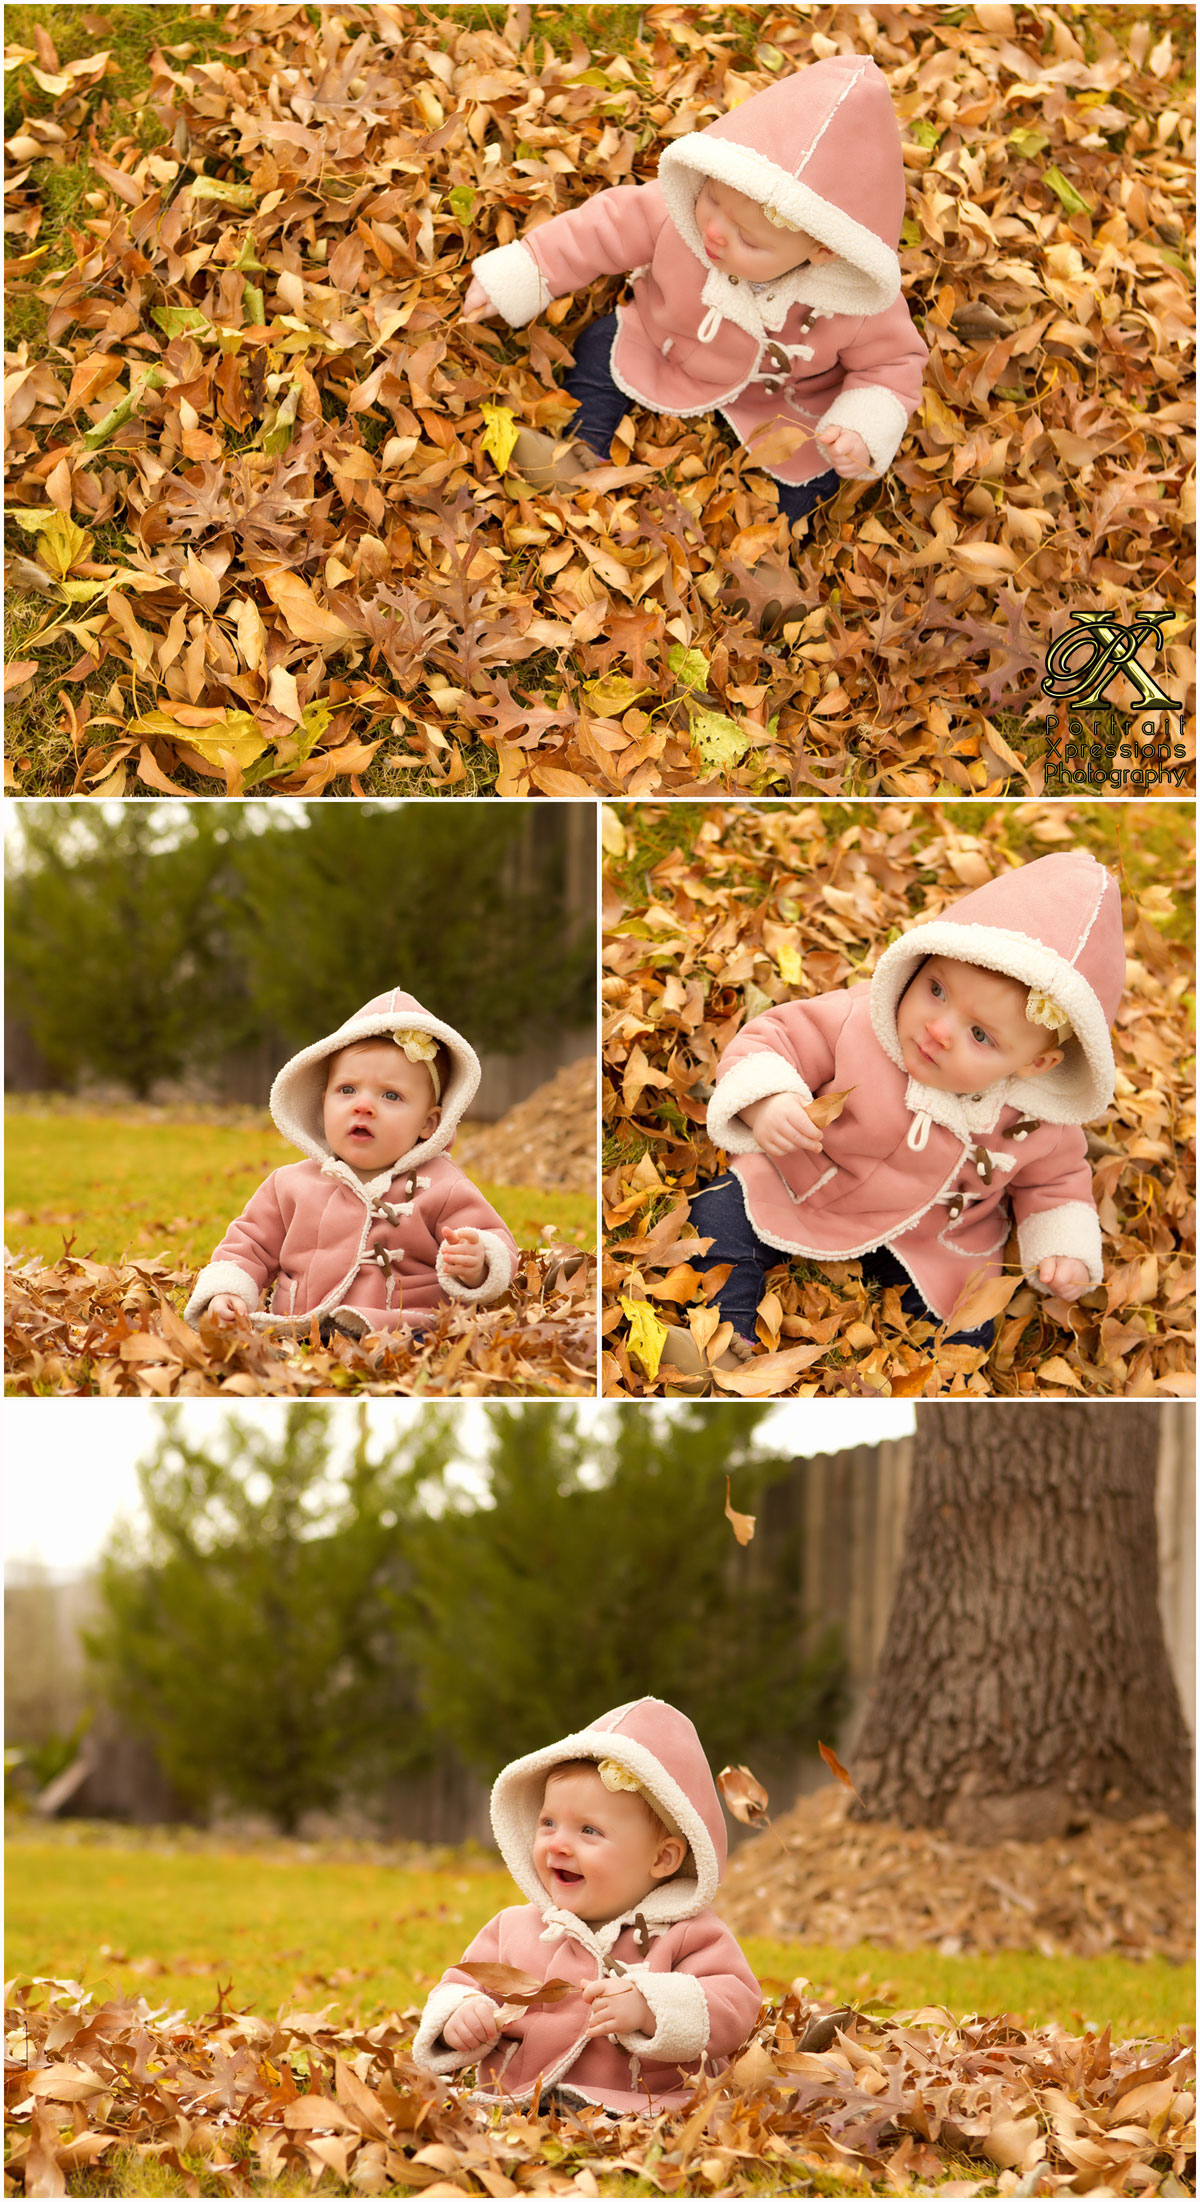 baby joley playing in fall leaves